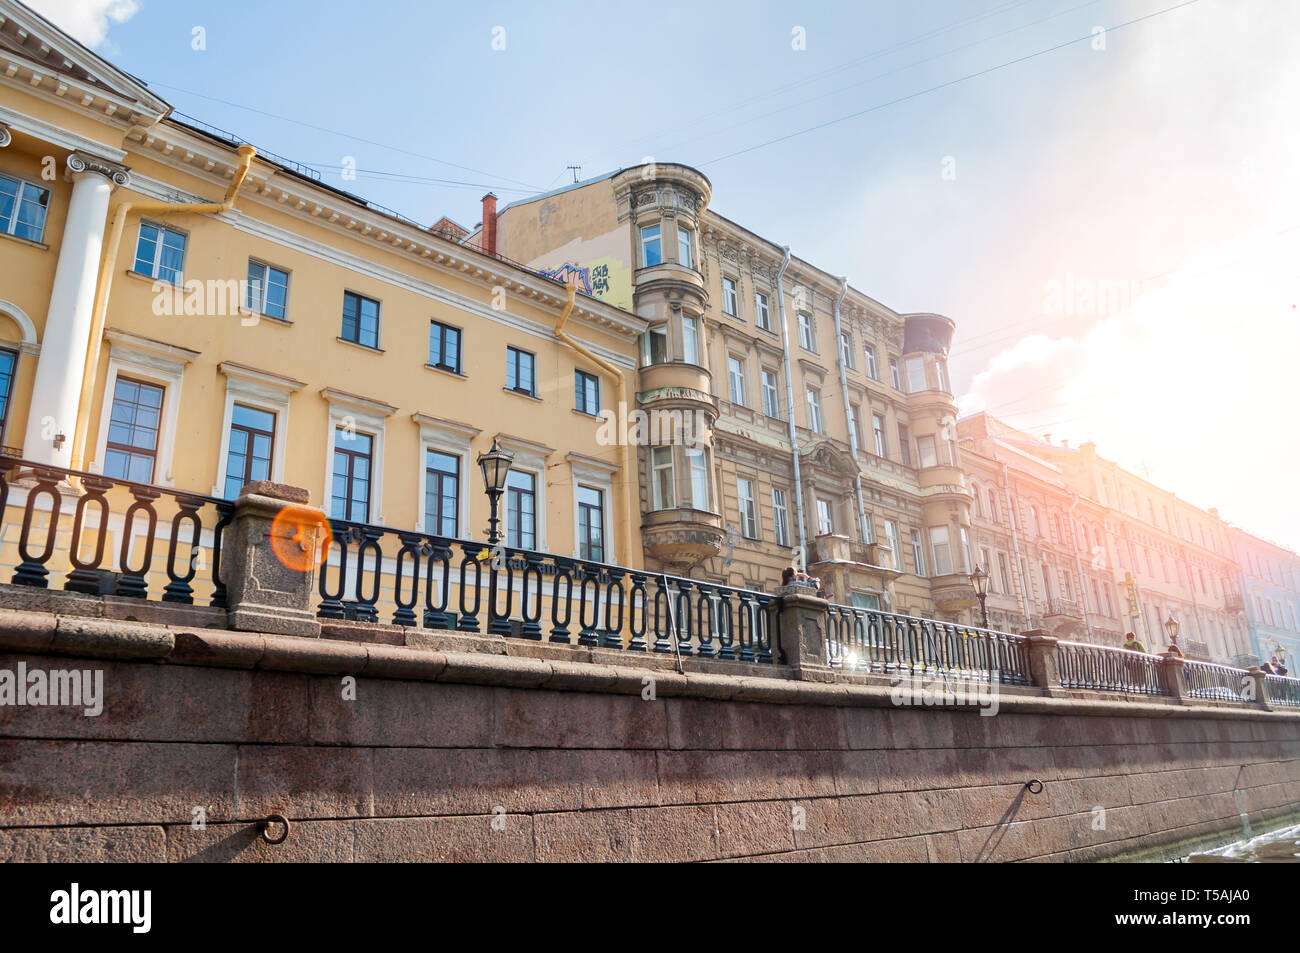 St Petersburg, Russia - October 3, 2016. Historic buildings along Griboyedov channel embankment. In the center - profitable house built in 1823 by the Stock Photo